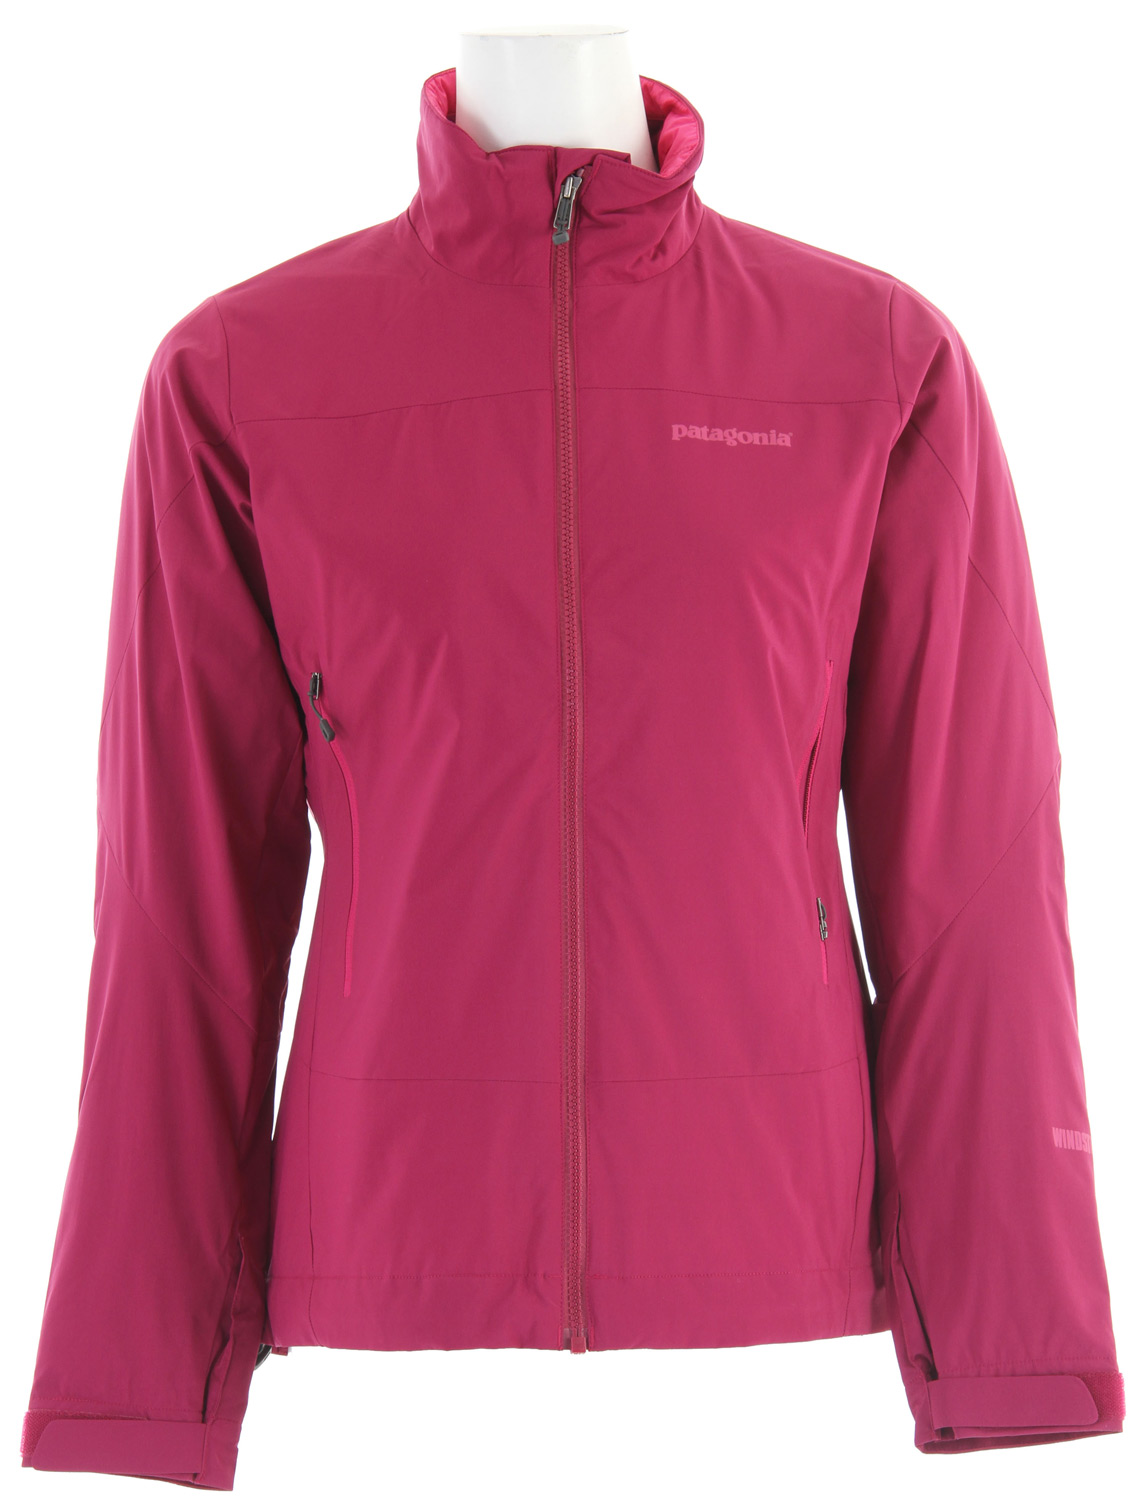 A lightweight insulated jacket with low bulk, the Patagonia Solar Wind Jacket combines a nylon WINDSTOPPERA(R) insulated Shell exterior with 60g PrimaLoft ECO insulation for total warmth and wind protection.Key Features of the Patagonia Solar Wind Jacket: WINDSTOPPER insulated Shell fabric combined with PrimaLoft Eco insulation is warm, light, compressible and highly weather-resistant interior quilting stabilizes insulation Pockets: Harness- and pack-compatible chest pocket configuration with reverse-coil zippers; internal zippered security pocket Touch Point System embeds cord locks in the hood and hem for quick adjustments to seal out rain and snow (patented) Cuffs with low-profile closure and pleated gusset Regular fit (15.5 oz) 439g Fabric: Shell: 2.8 oz WINDSTOPPER 100% nylon. Insulation: 60g Primaloft ECO. Lining: 1.4 oz 20-denier 100% polyester ripstop - $175.95